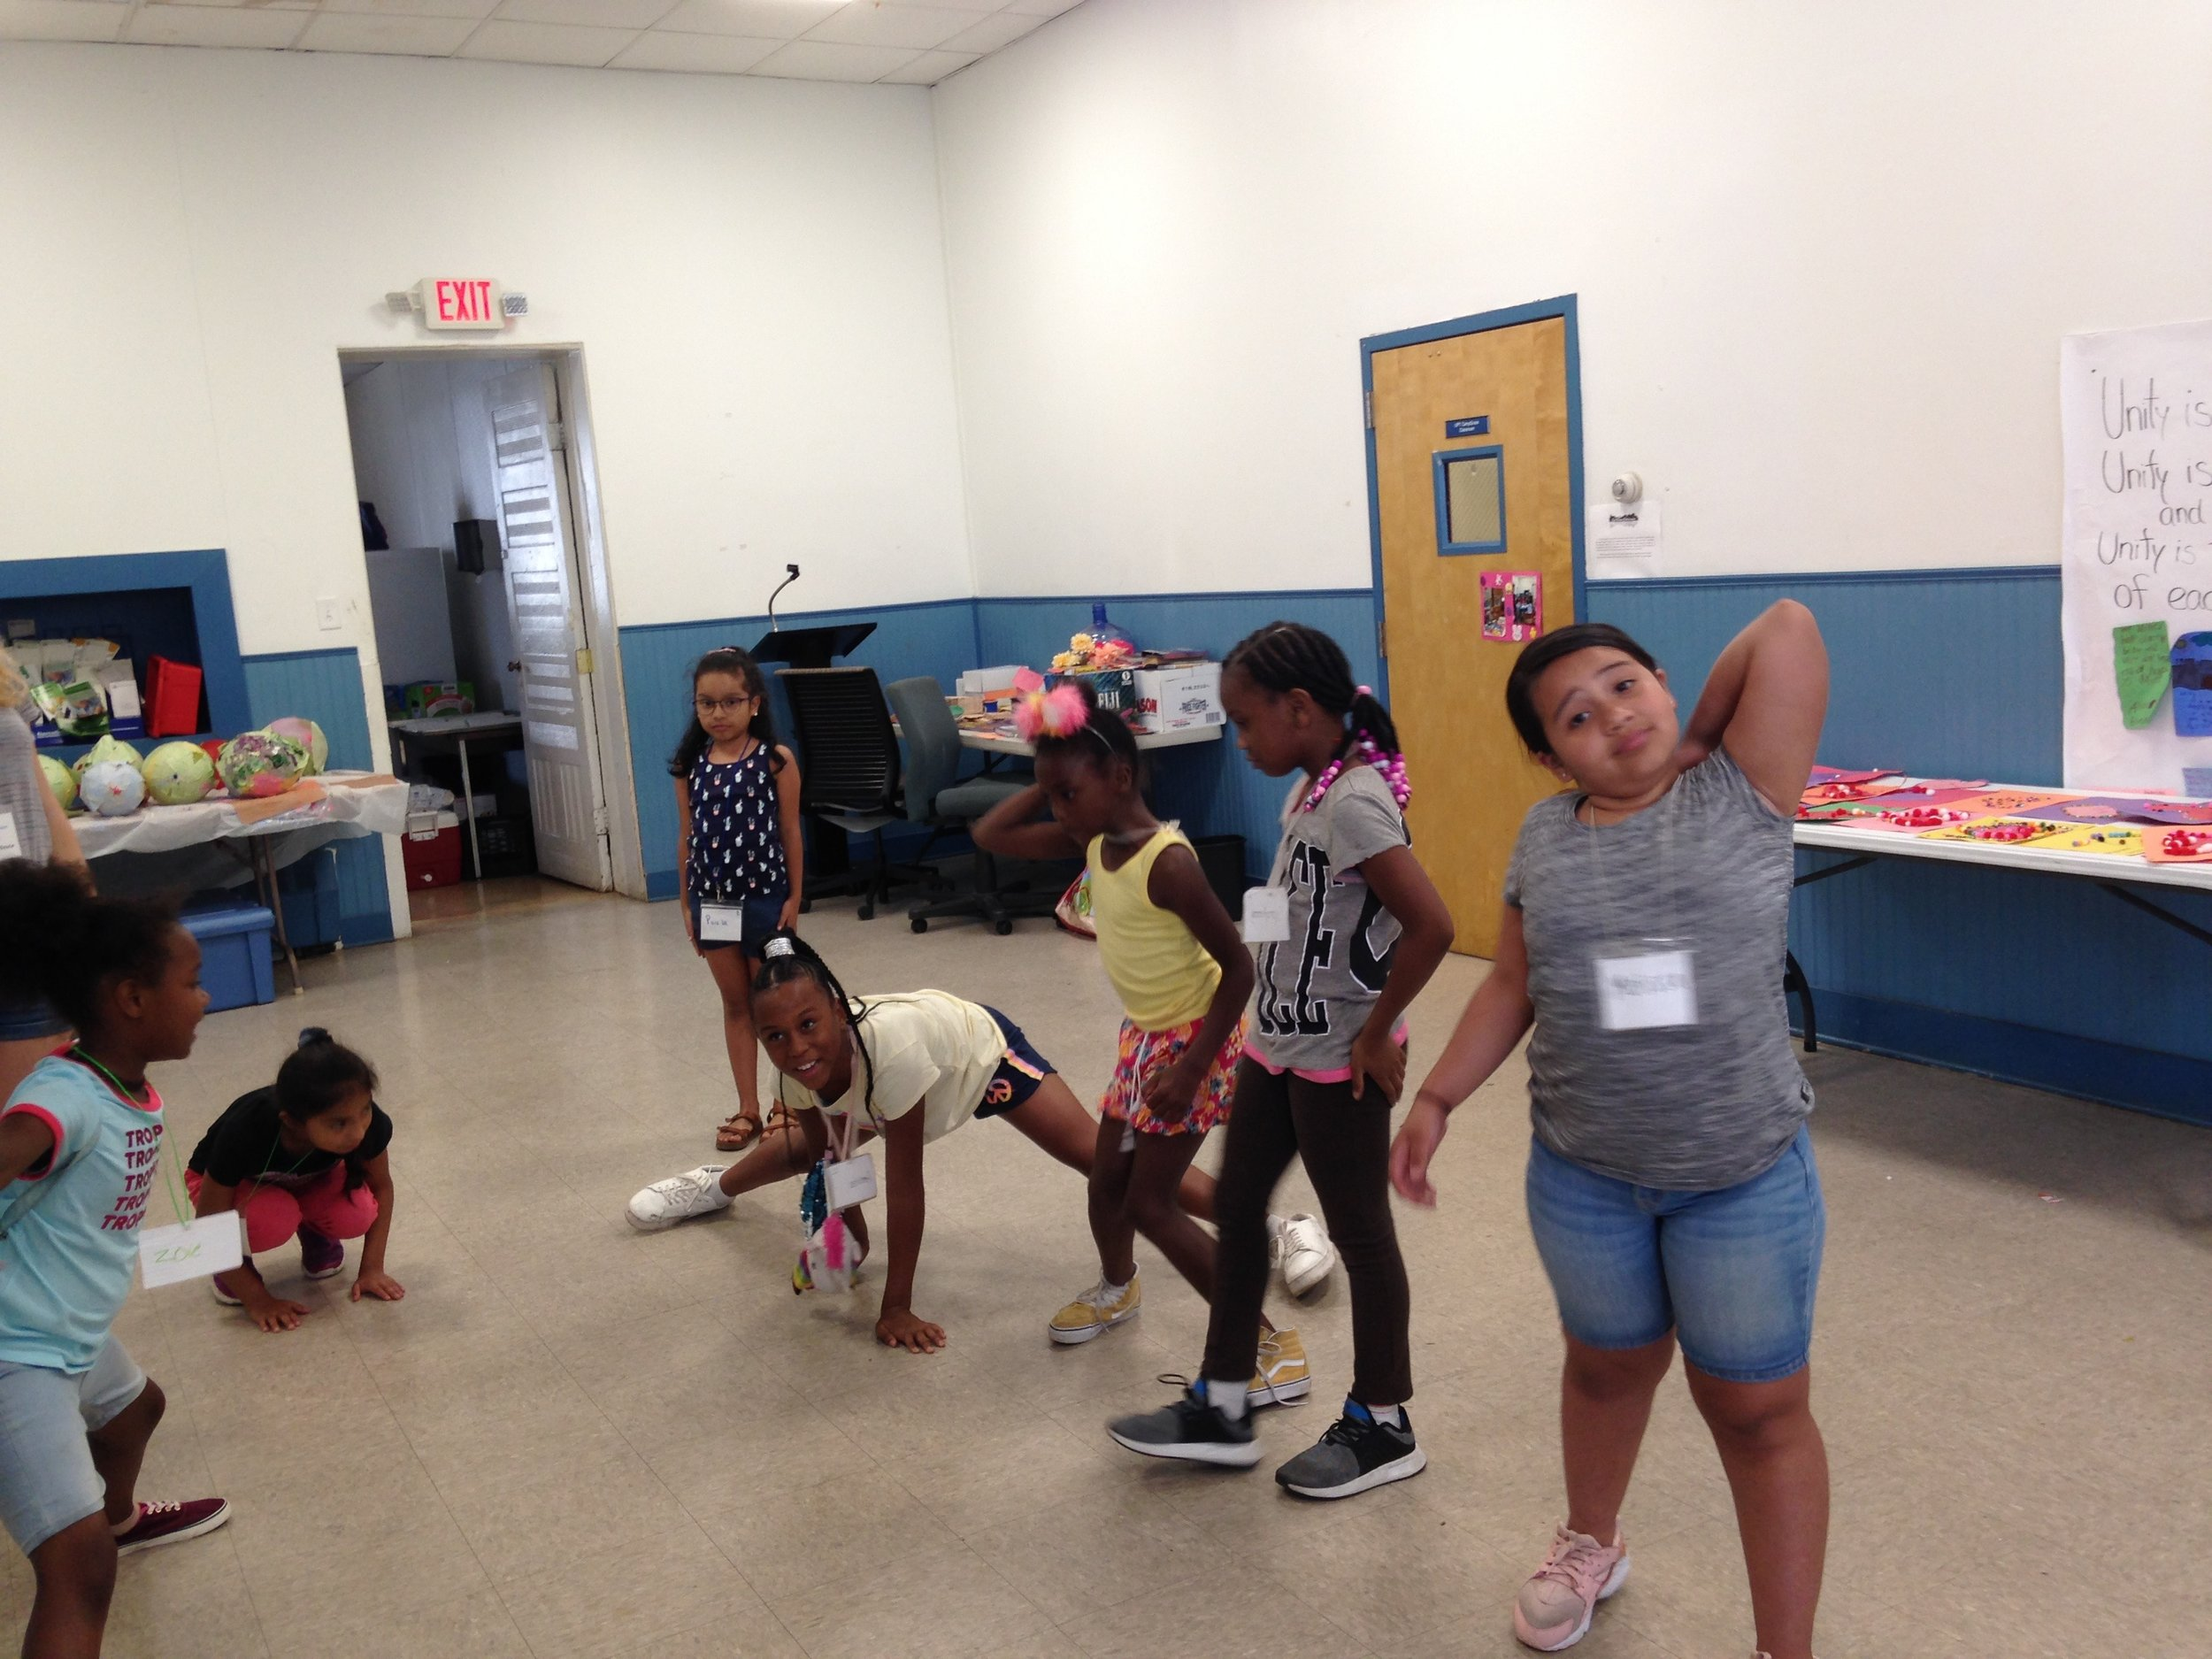 The campers shared their understanding of the stories through their art and actions!